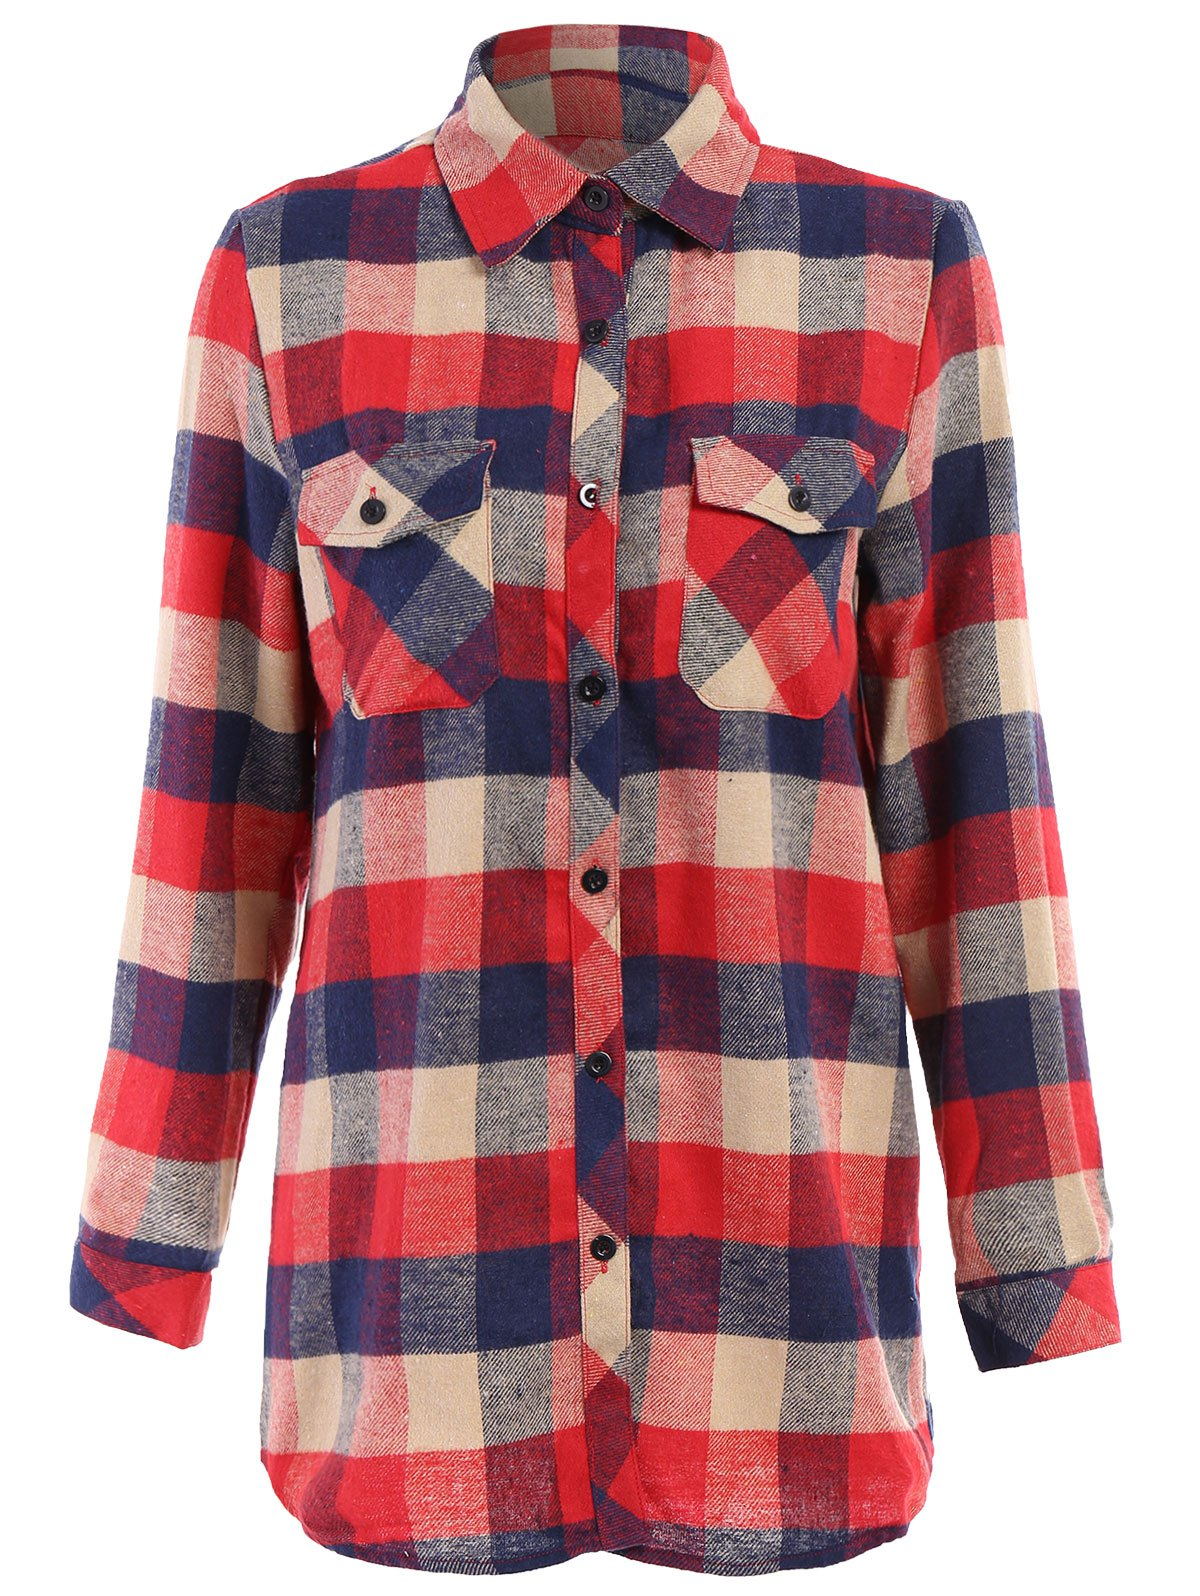 Preppy Style Women's Spring Long Shirt With Colorful Checked Print Slimming Design - RED L